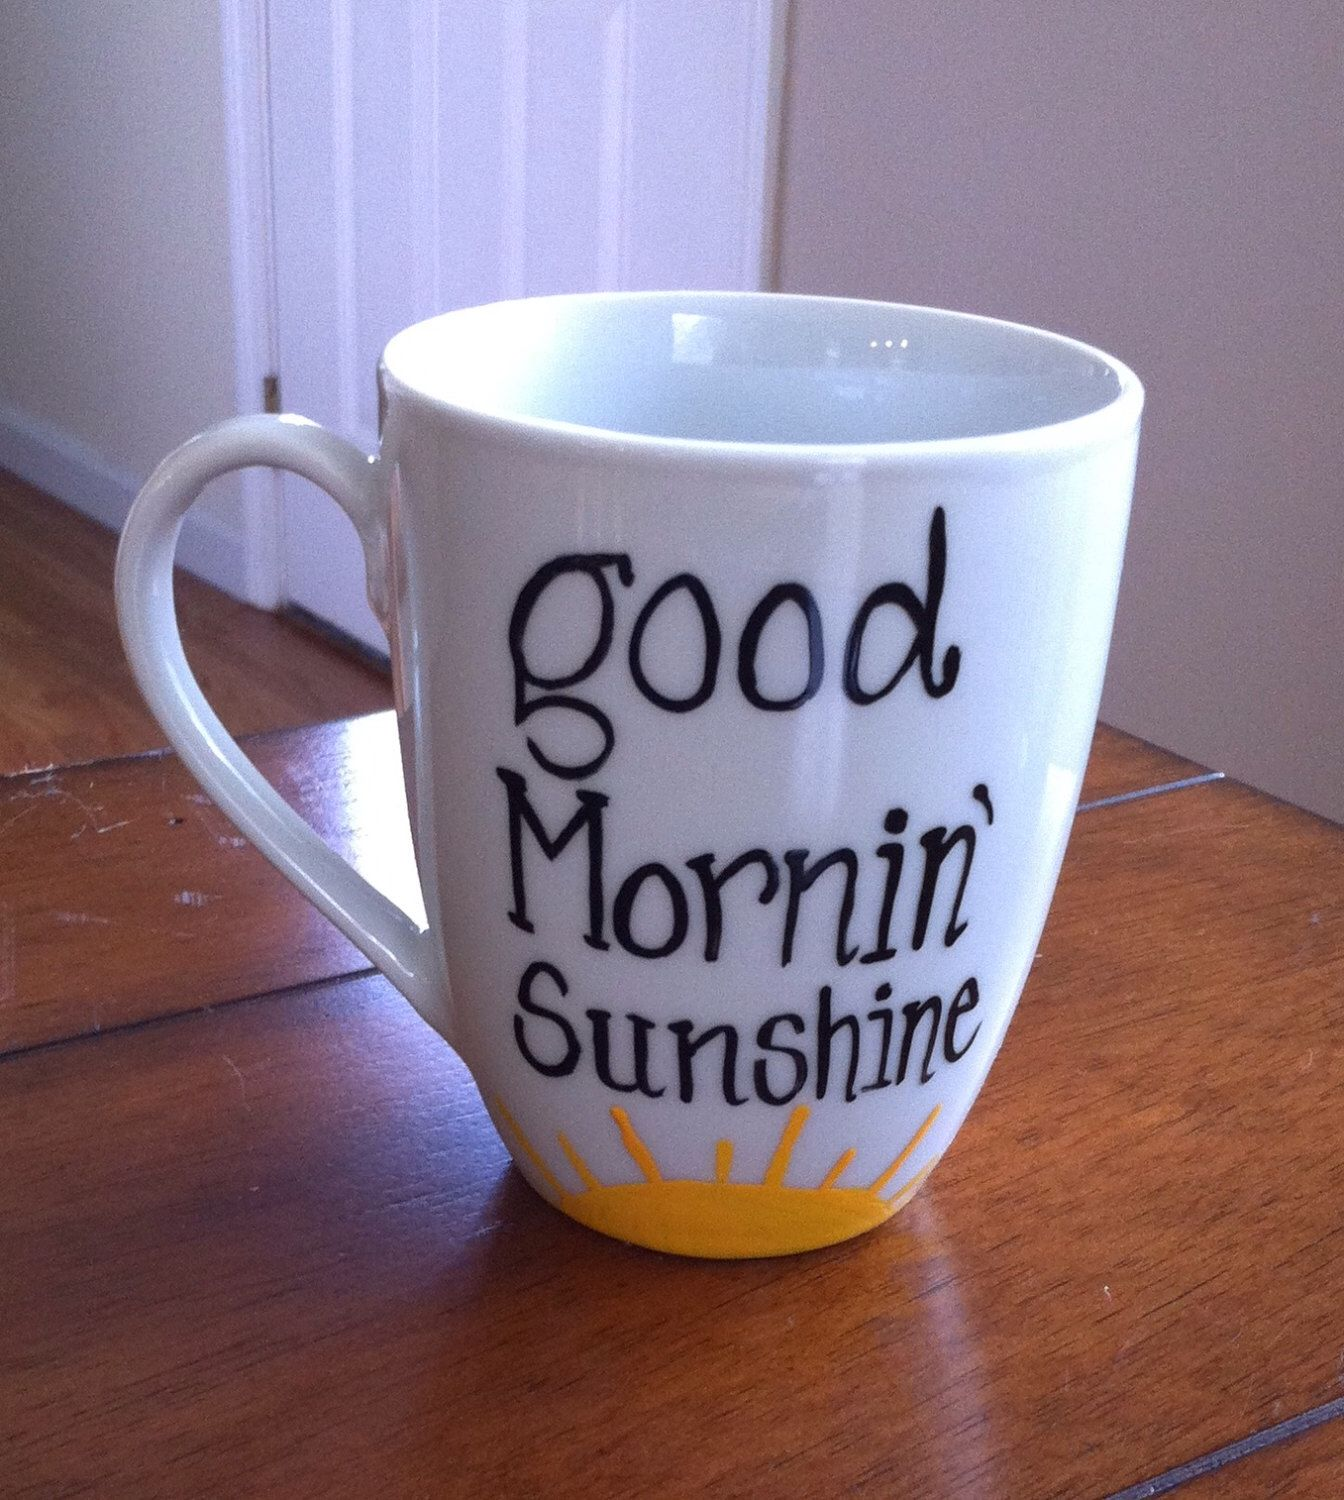 Good Mornin Sunshine Coffee Mug by TulaTinkers on Etsy https://www.etsy.com/listing/150758437/good-mornin-sunshine-coffee-mug